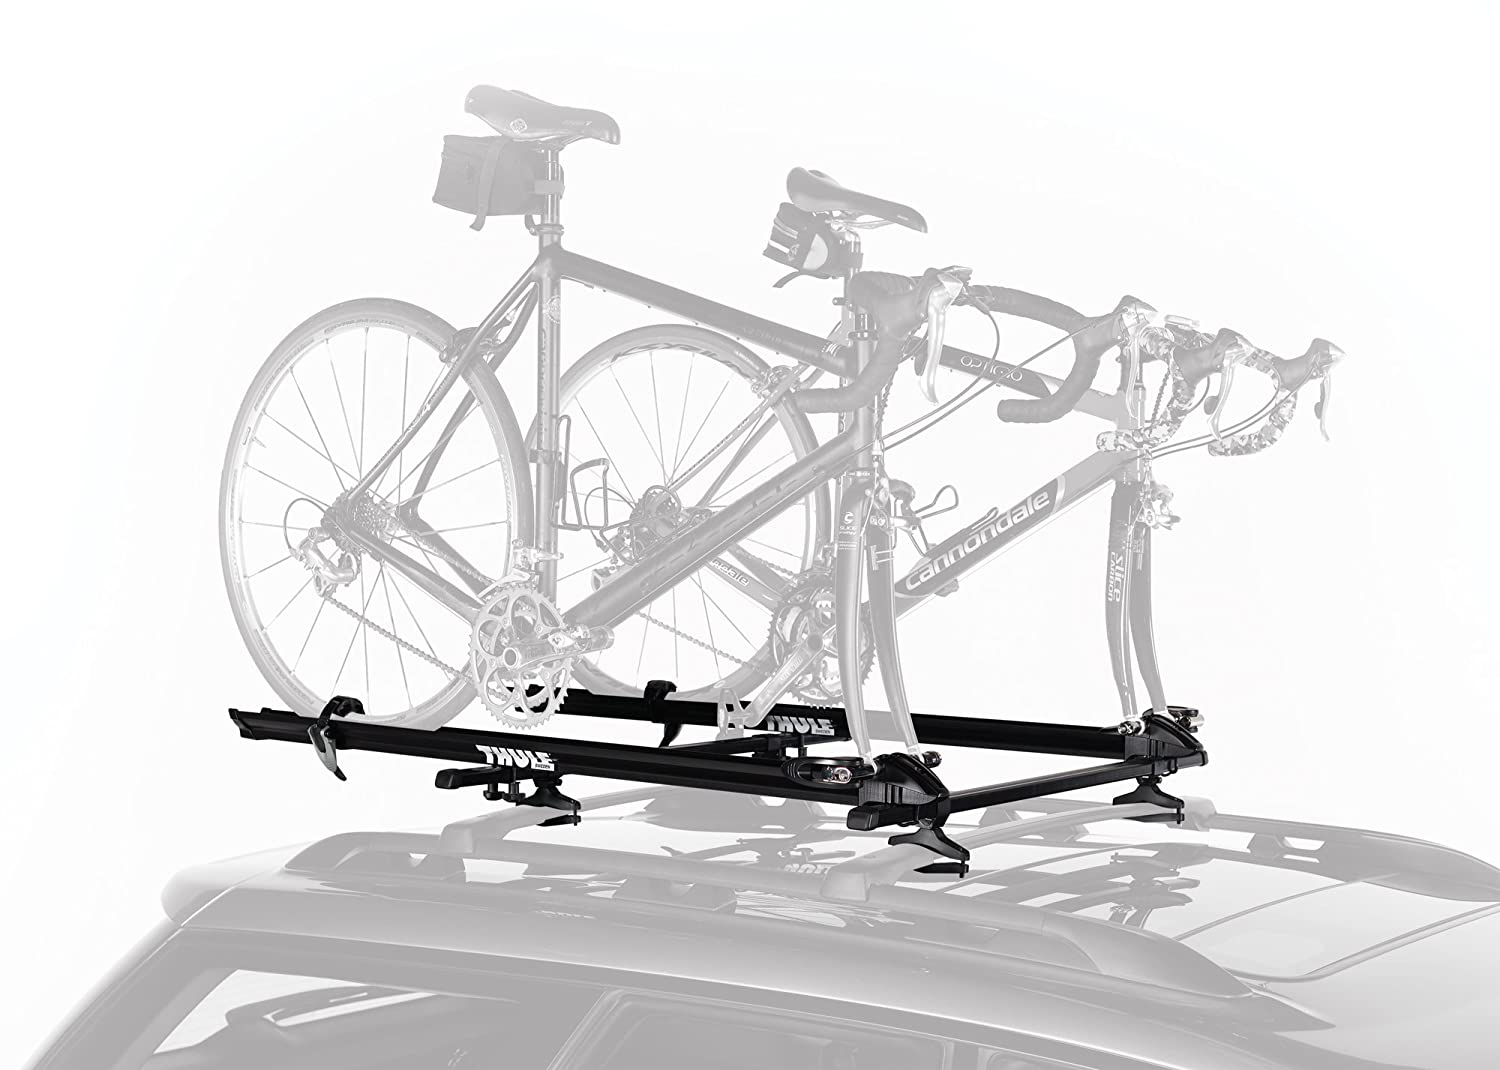 bike roof hitch or rear with car cargo category archived rack post for carrier on racks bicycle